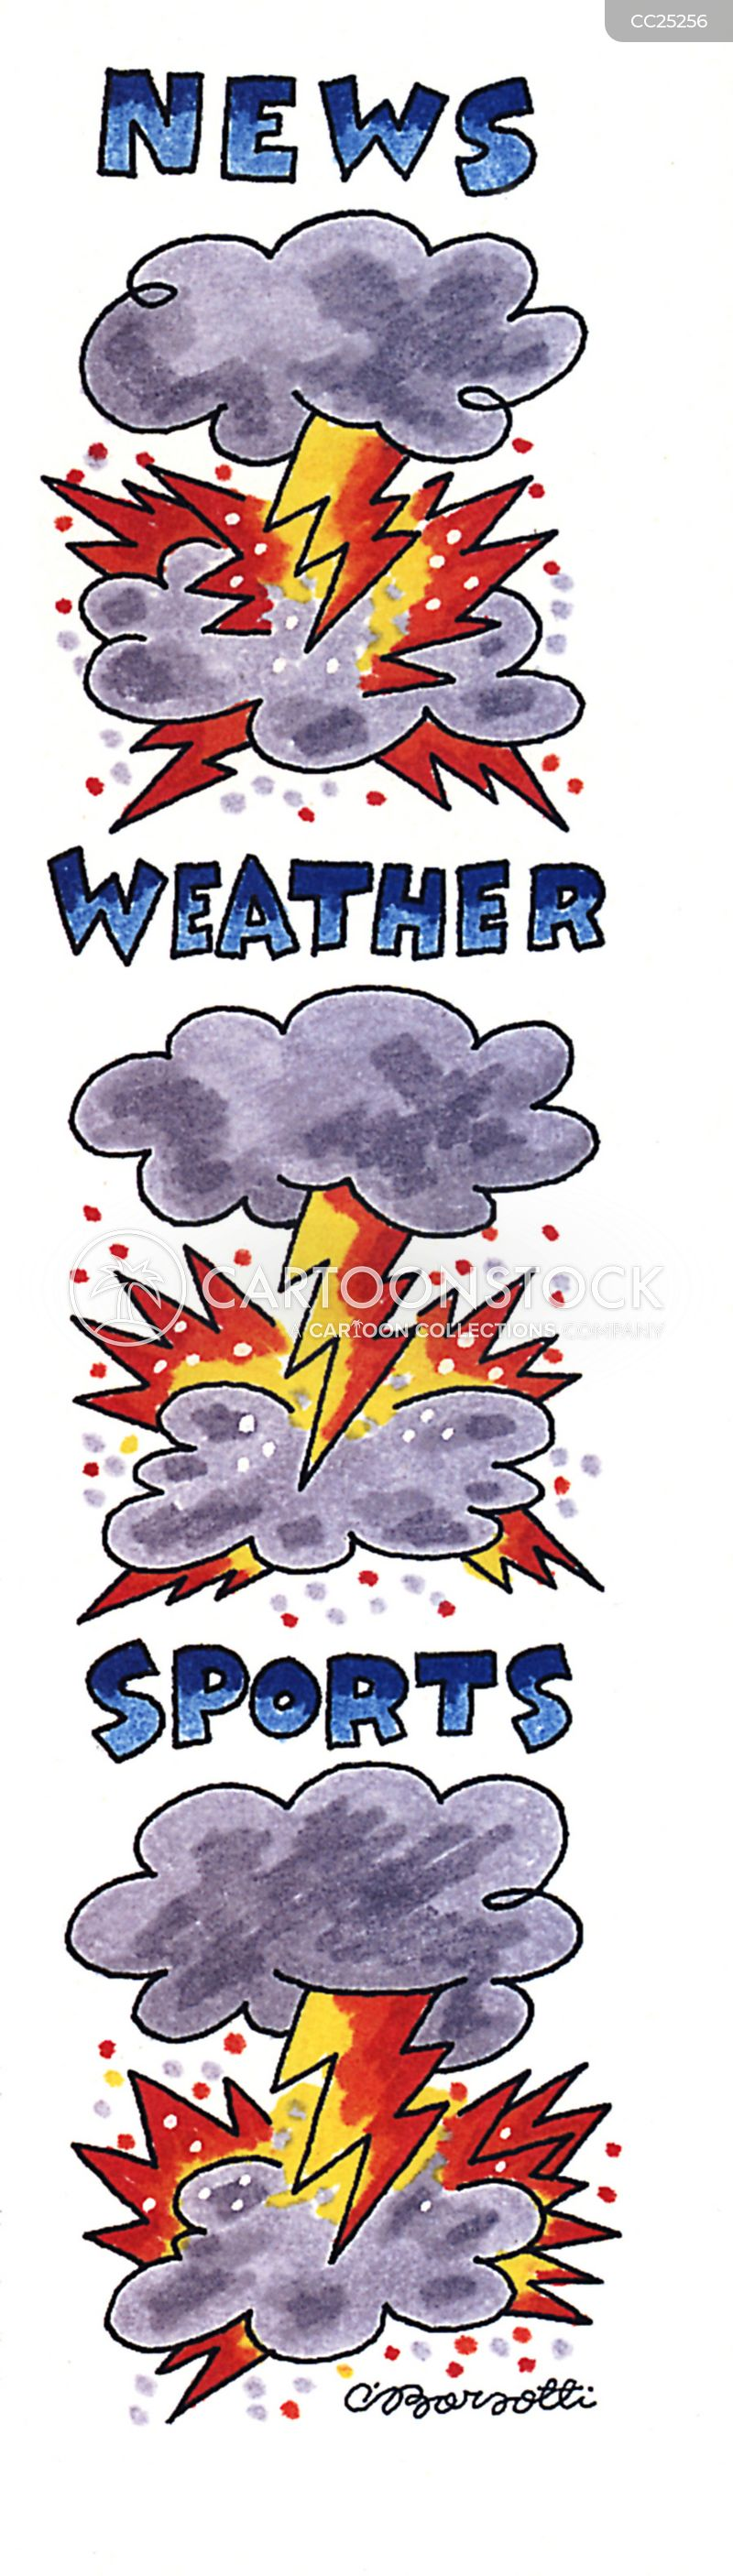 thunder storms cartoon